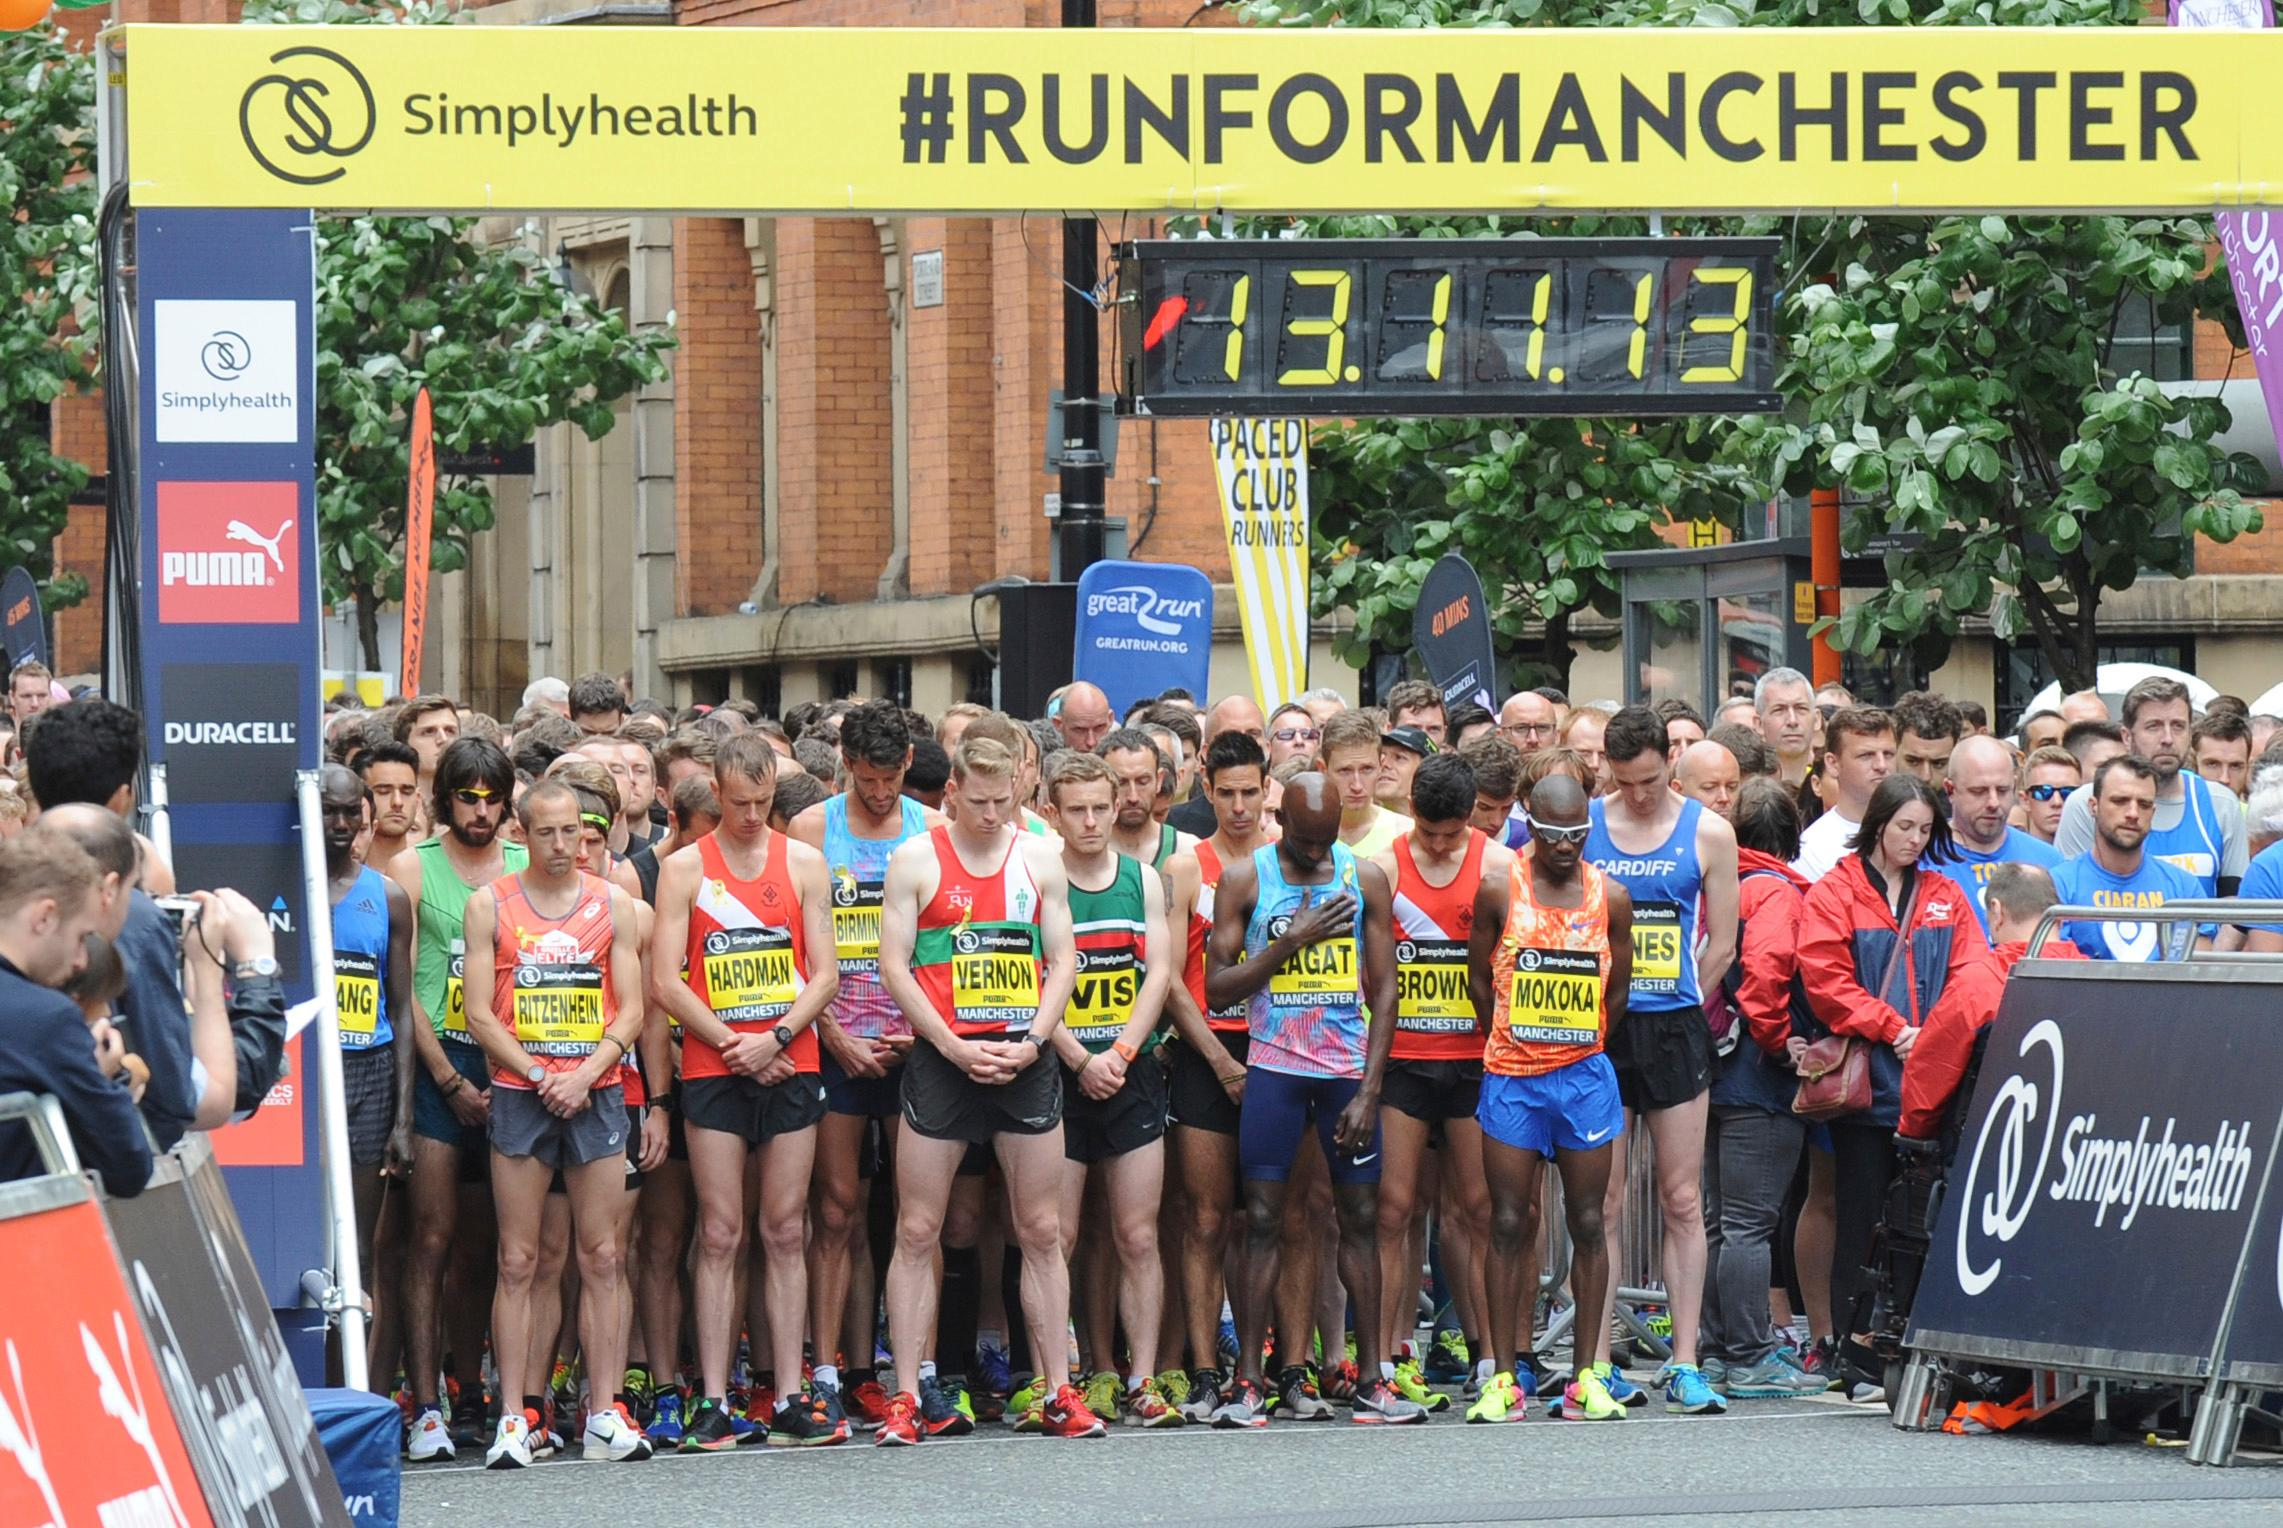 Runners observe a minutes silence before the start of the start of the Great Manchester Run in central Manchester, England Sunday May 28 2017. More than 20 people were killed in an explosion following a Ariana Grande concert at the Manchester Arena late Monday evening. (AP Photo/Rui Vieira)